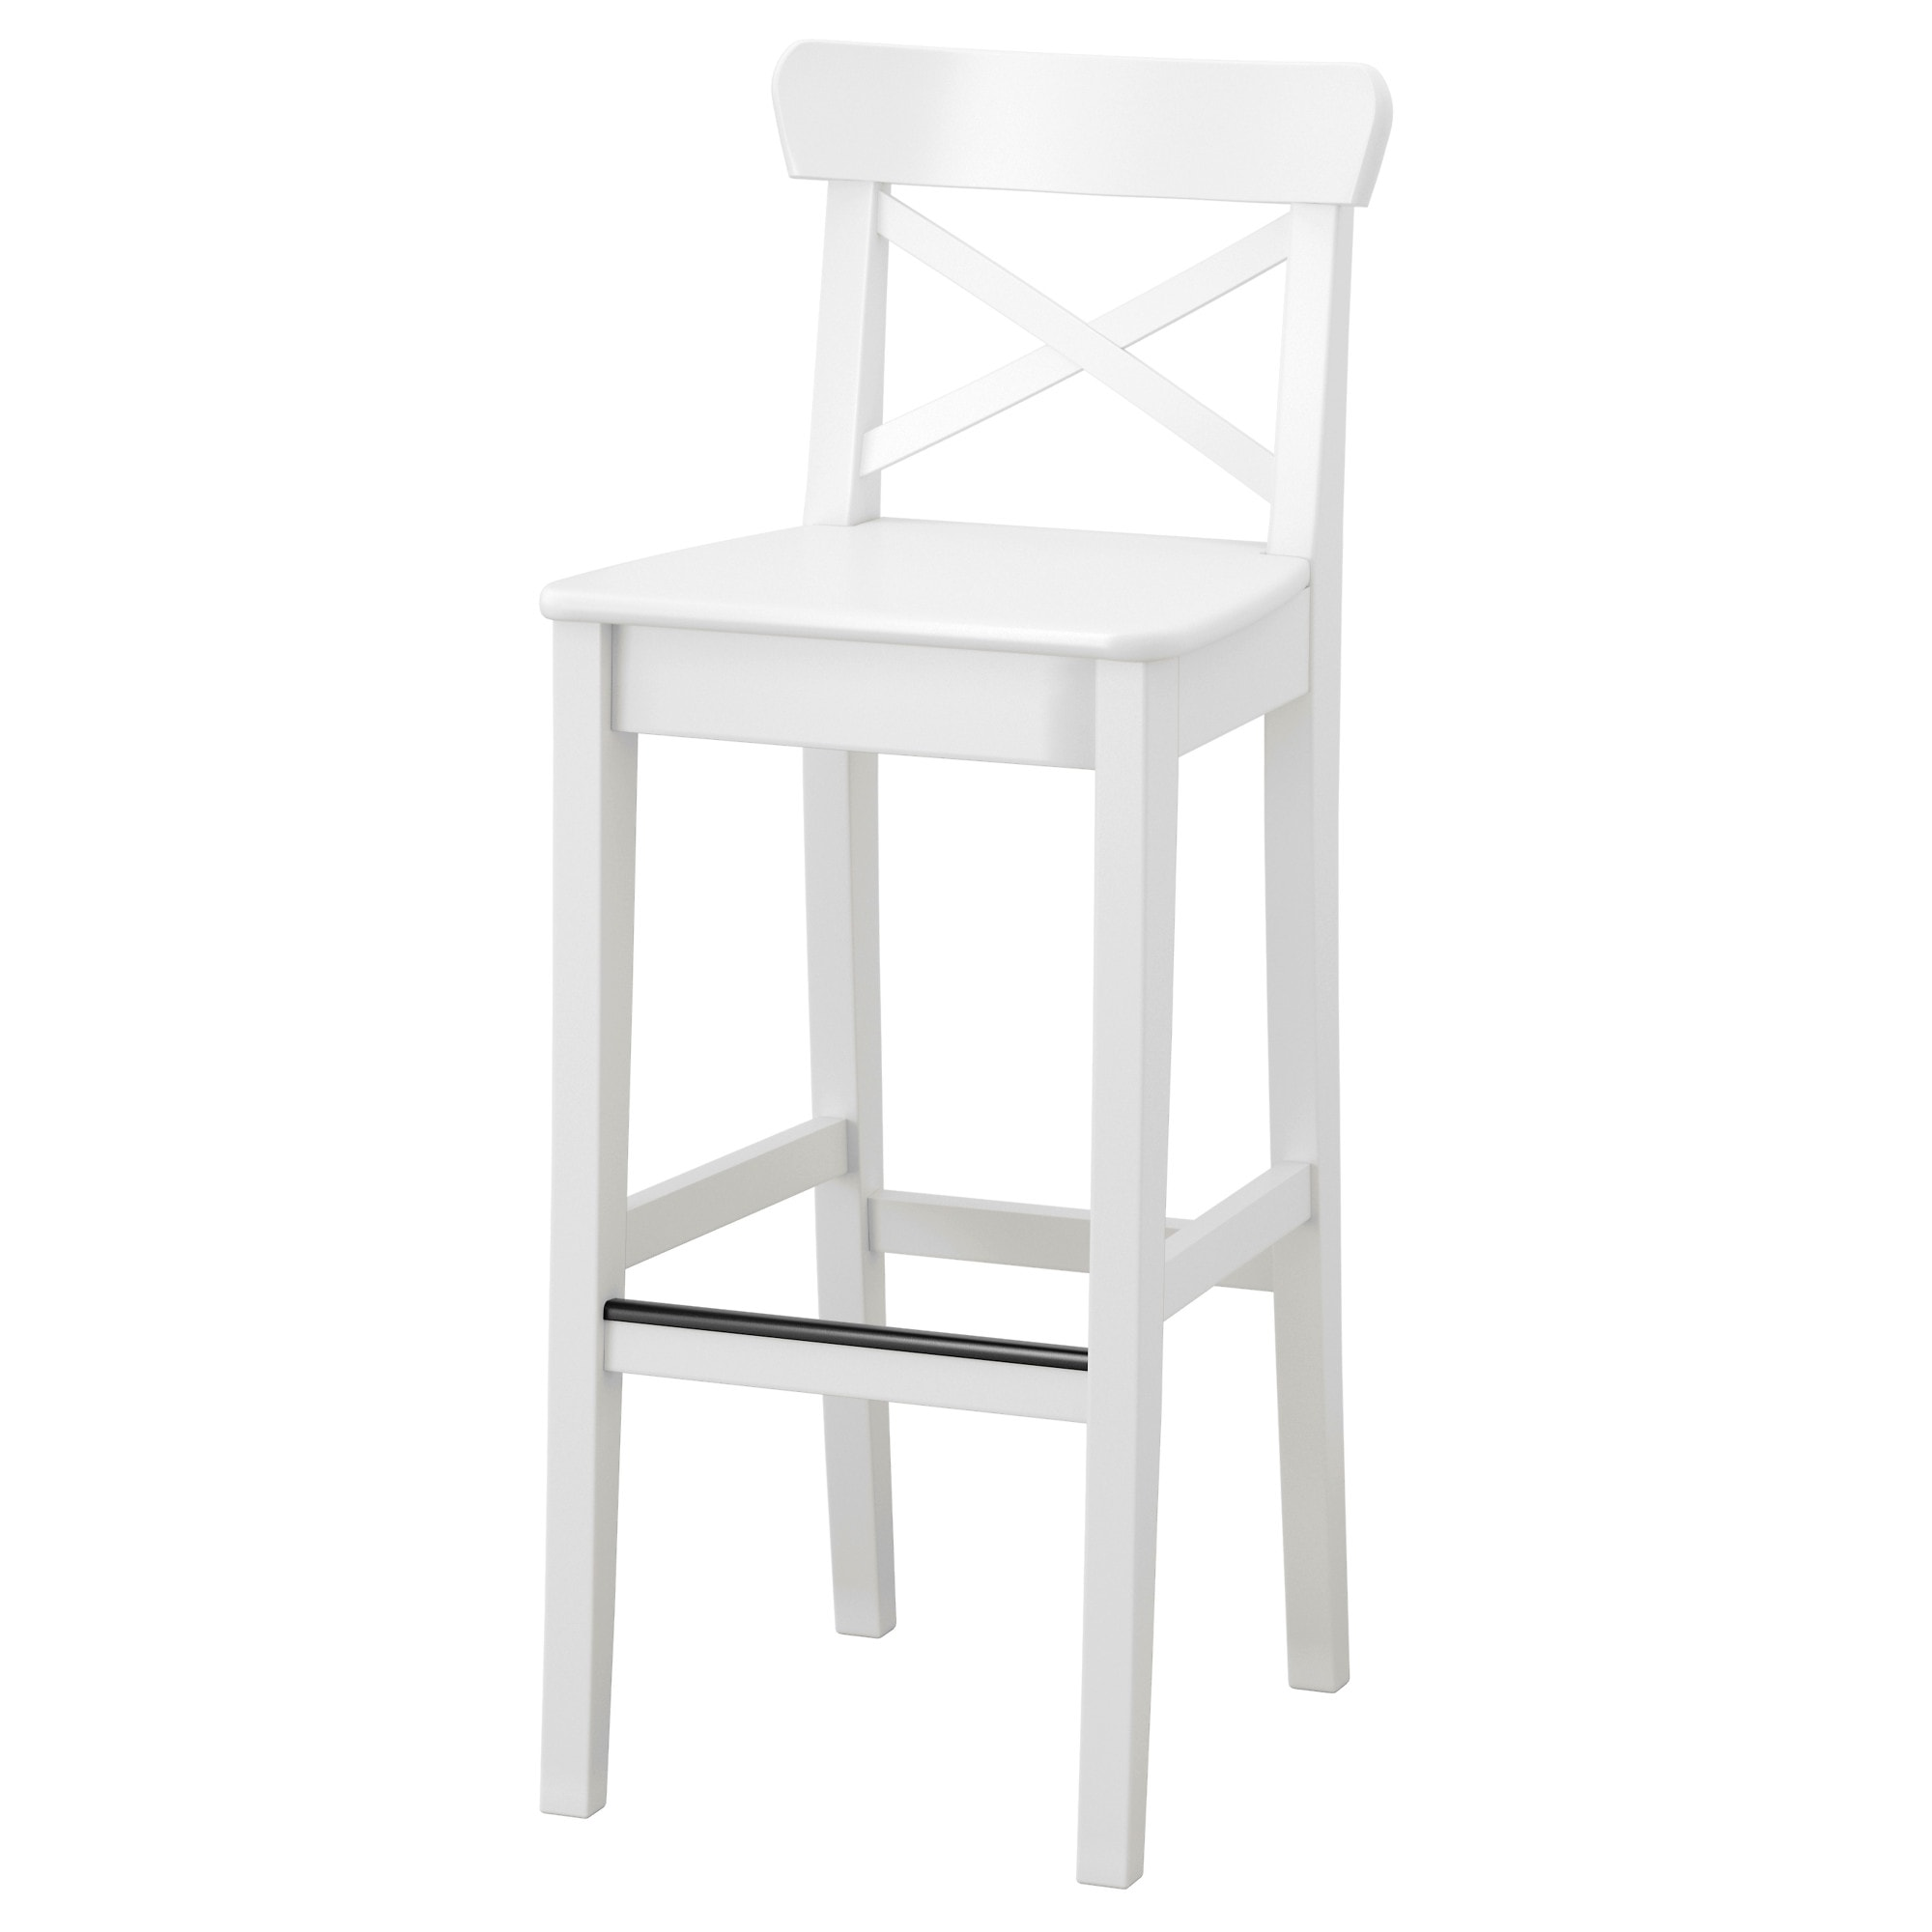 "INGOLF Bar stool with backrest 29 1 8 "" IKEA"